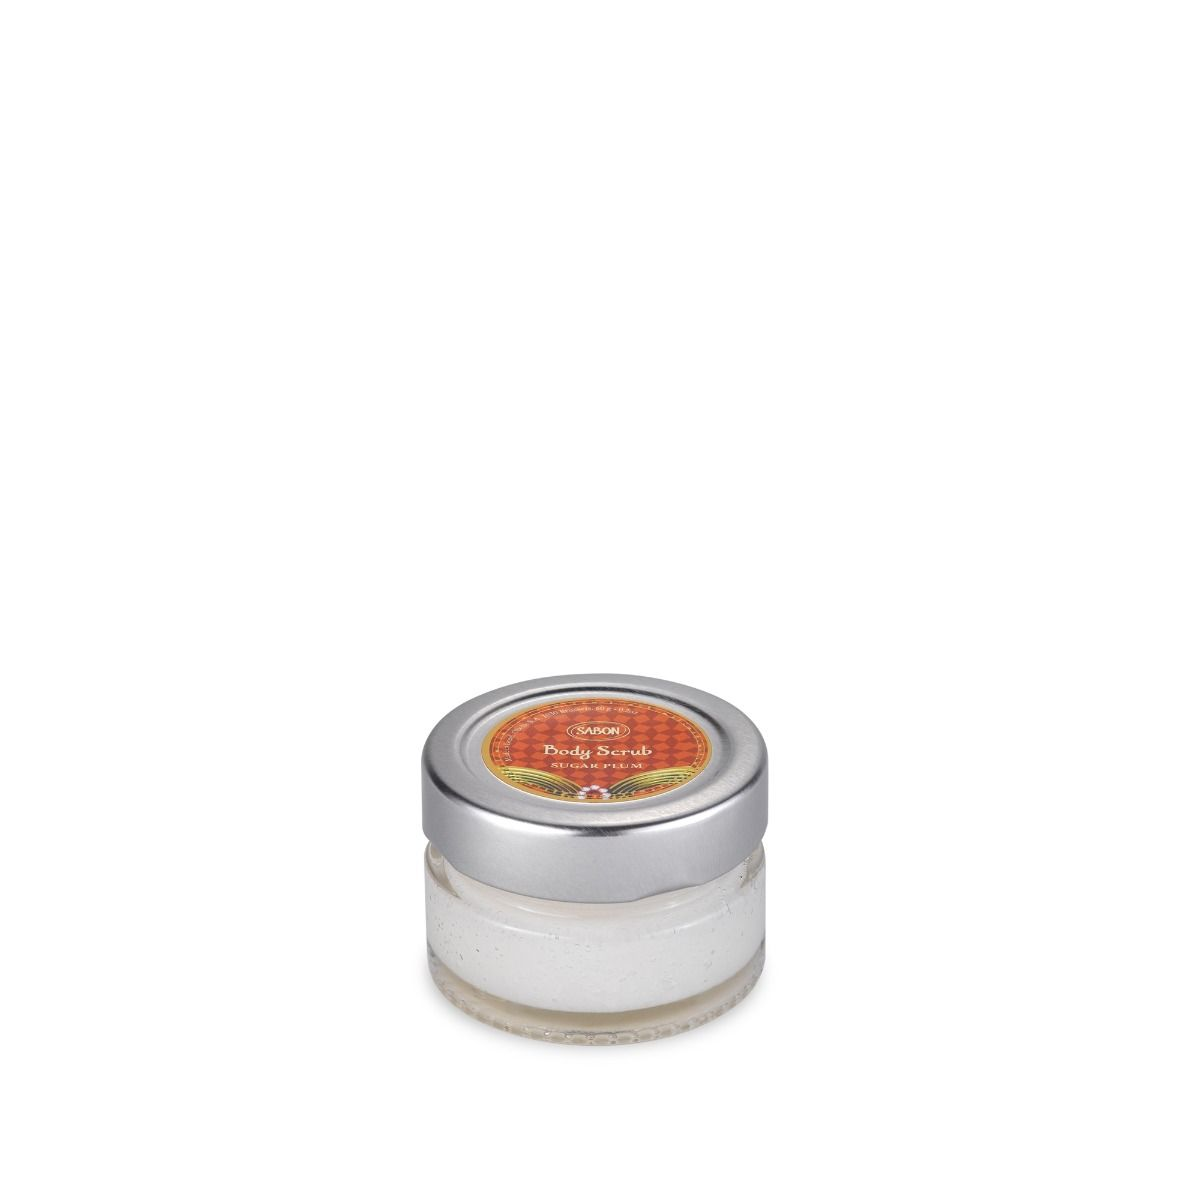 Mini Body Scrub